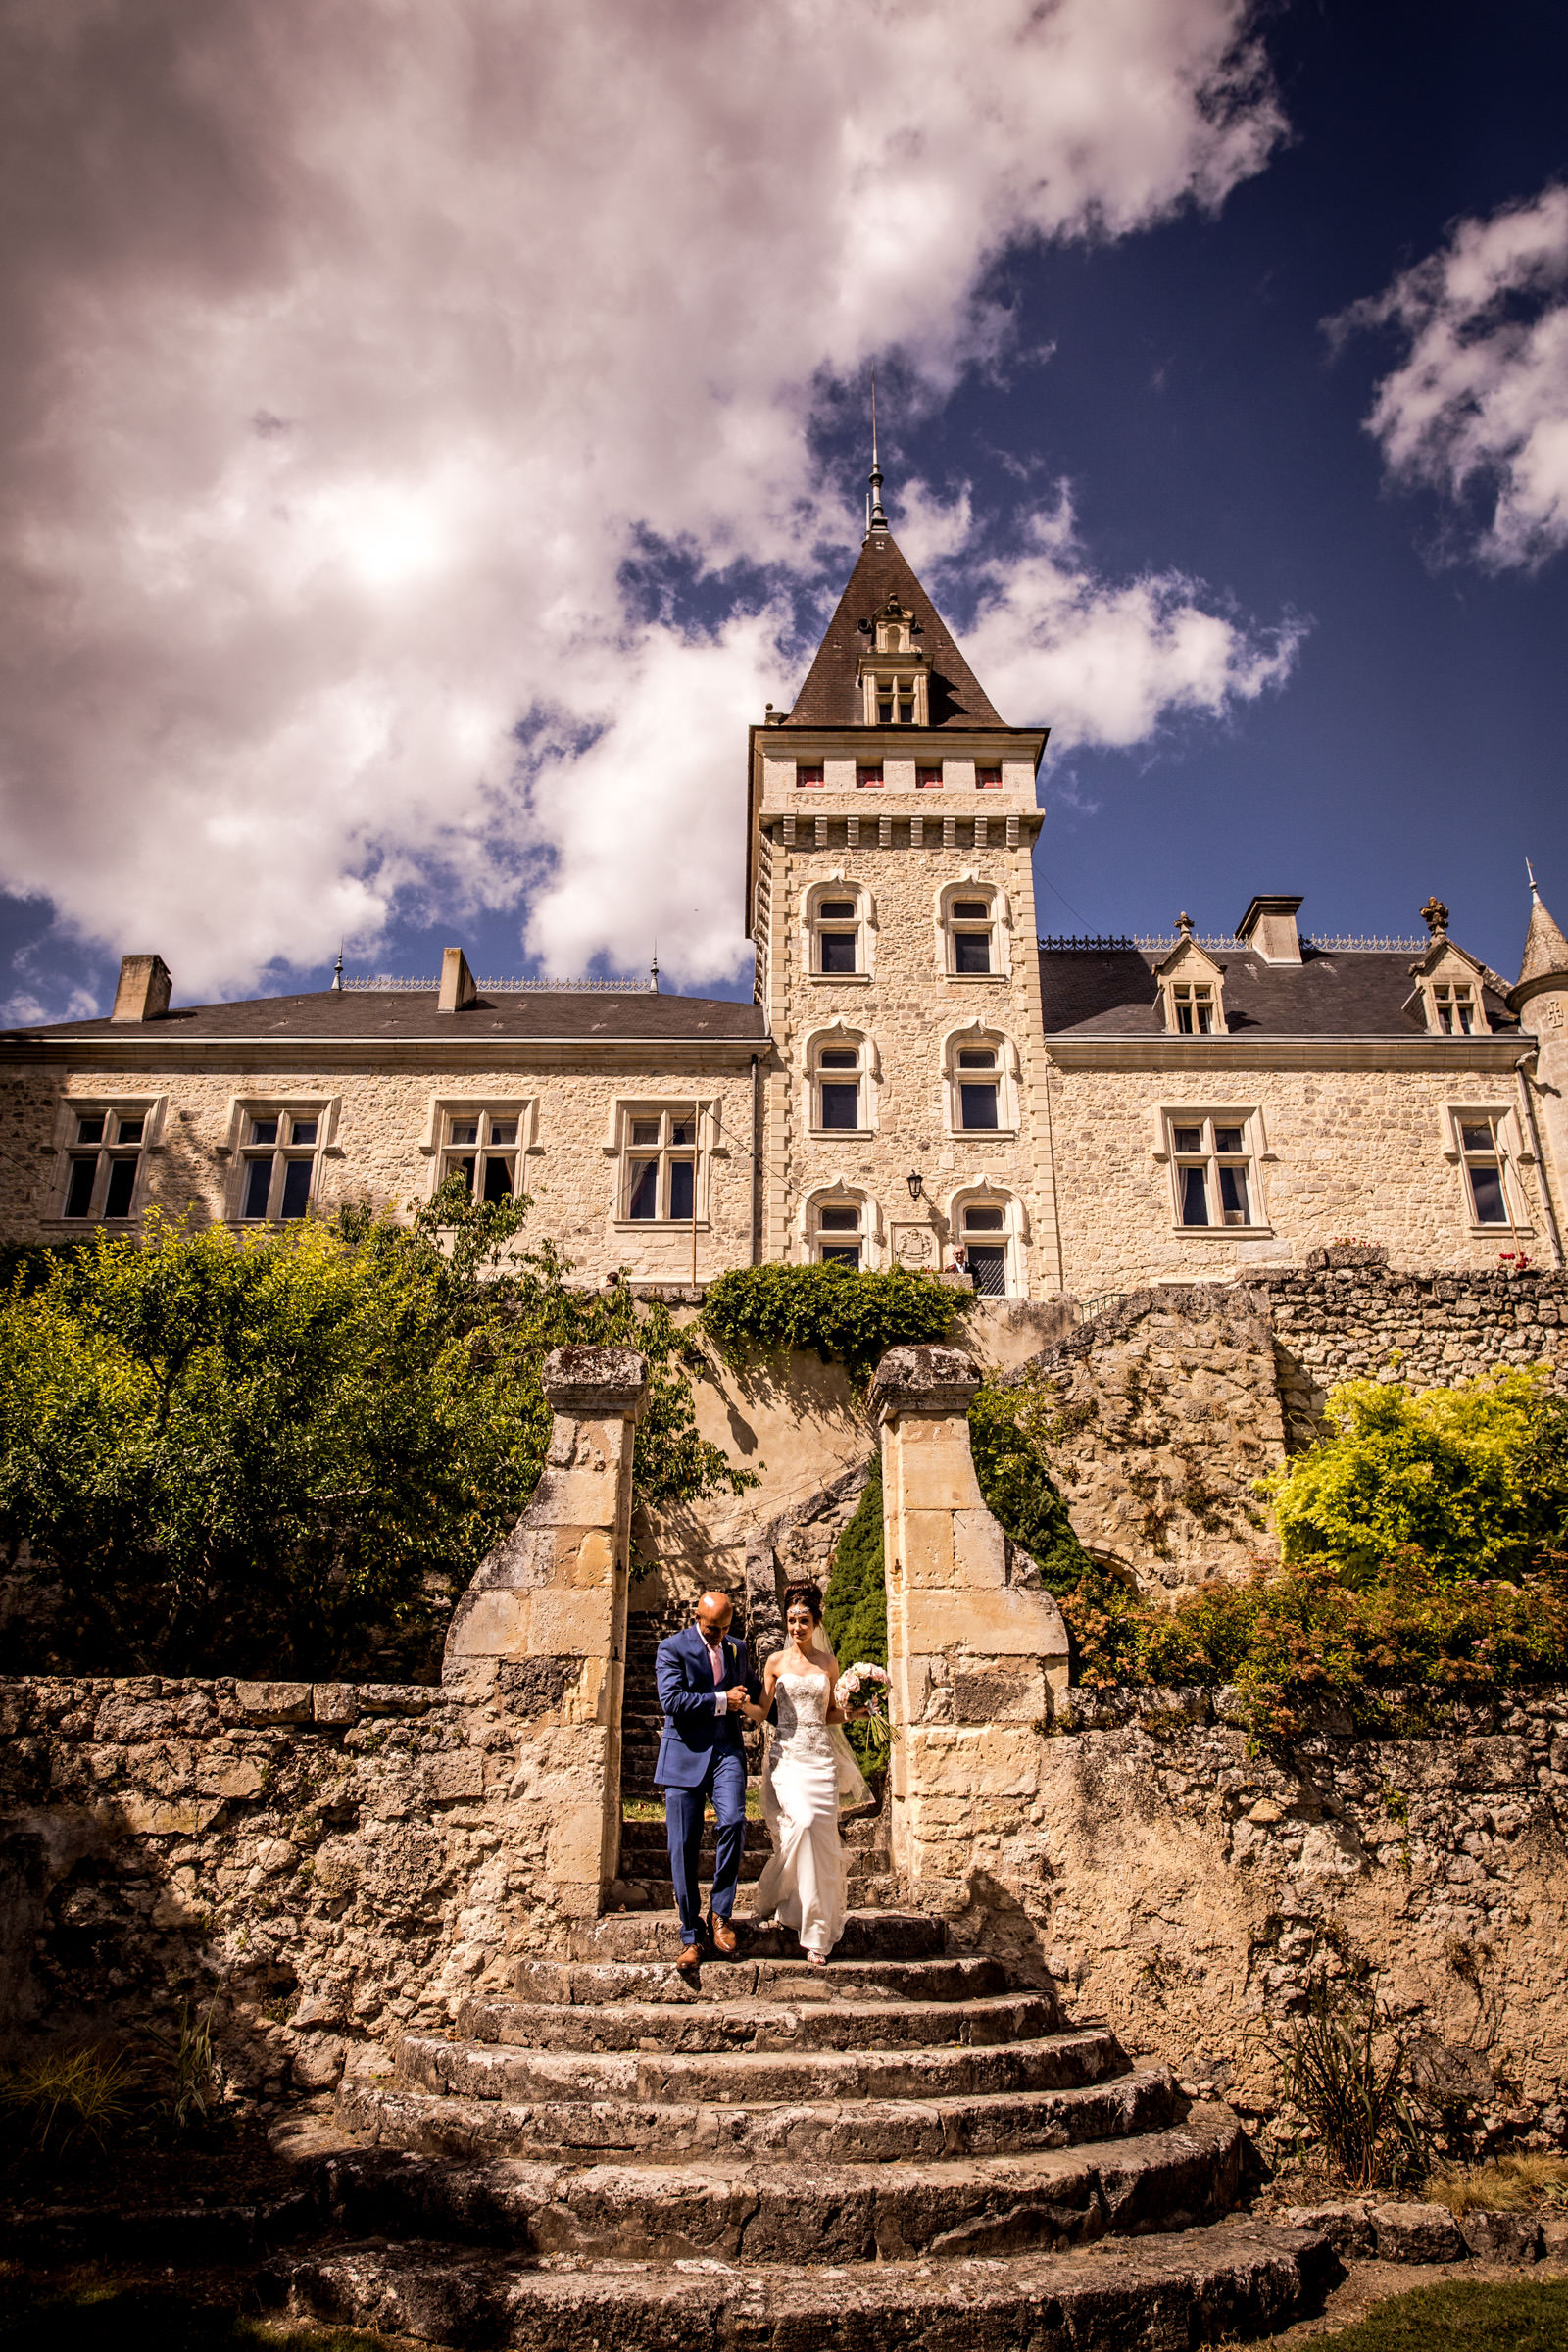 Uk Wedding photographers working at chateau de lisse in gascony 047.jpg